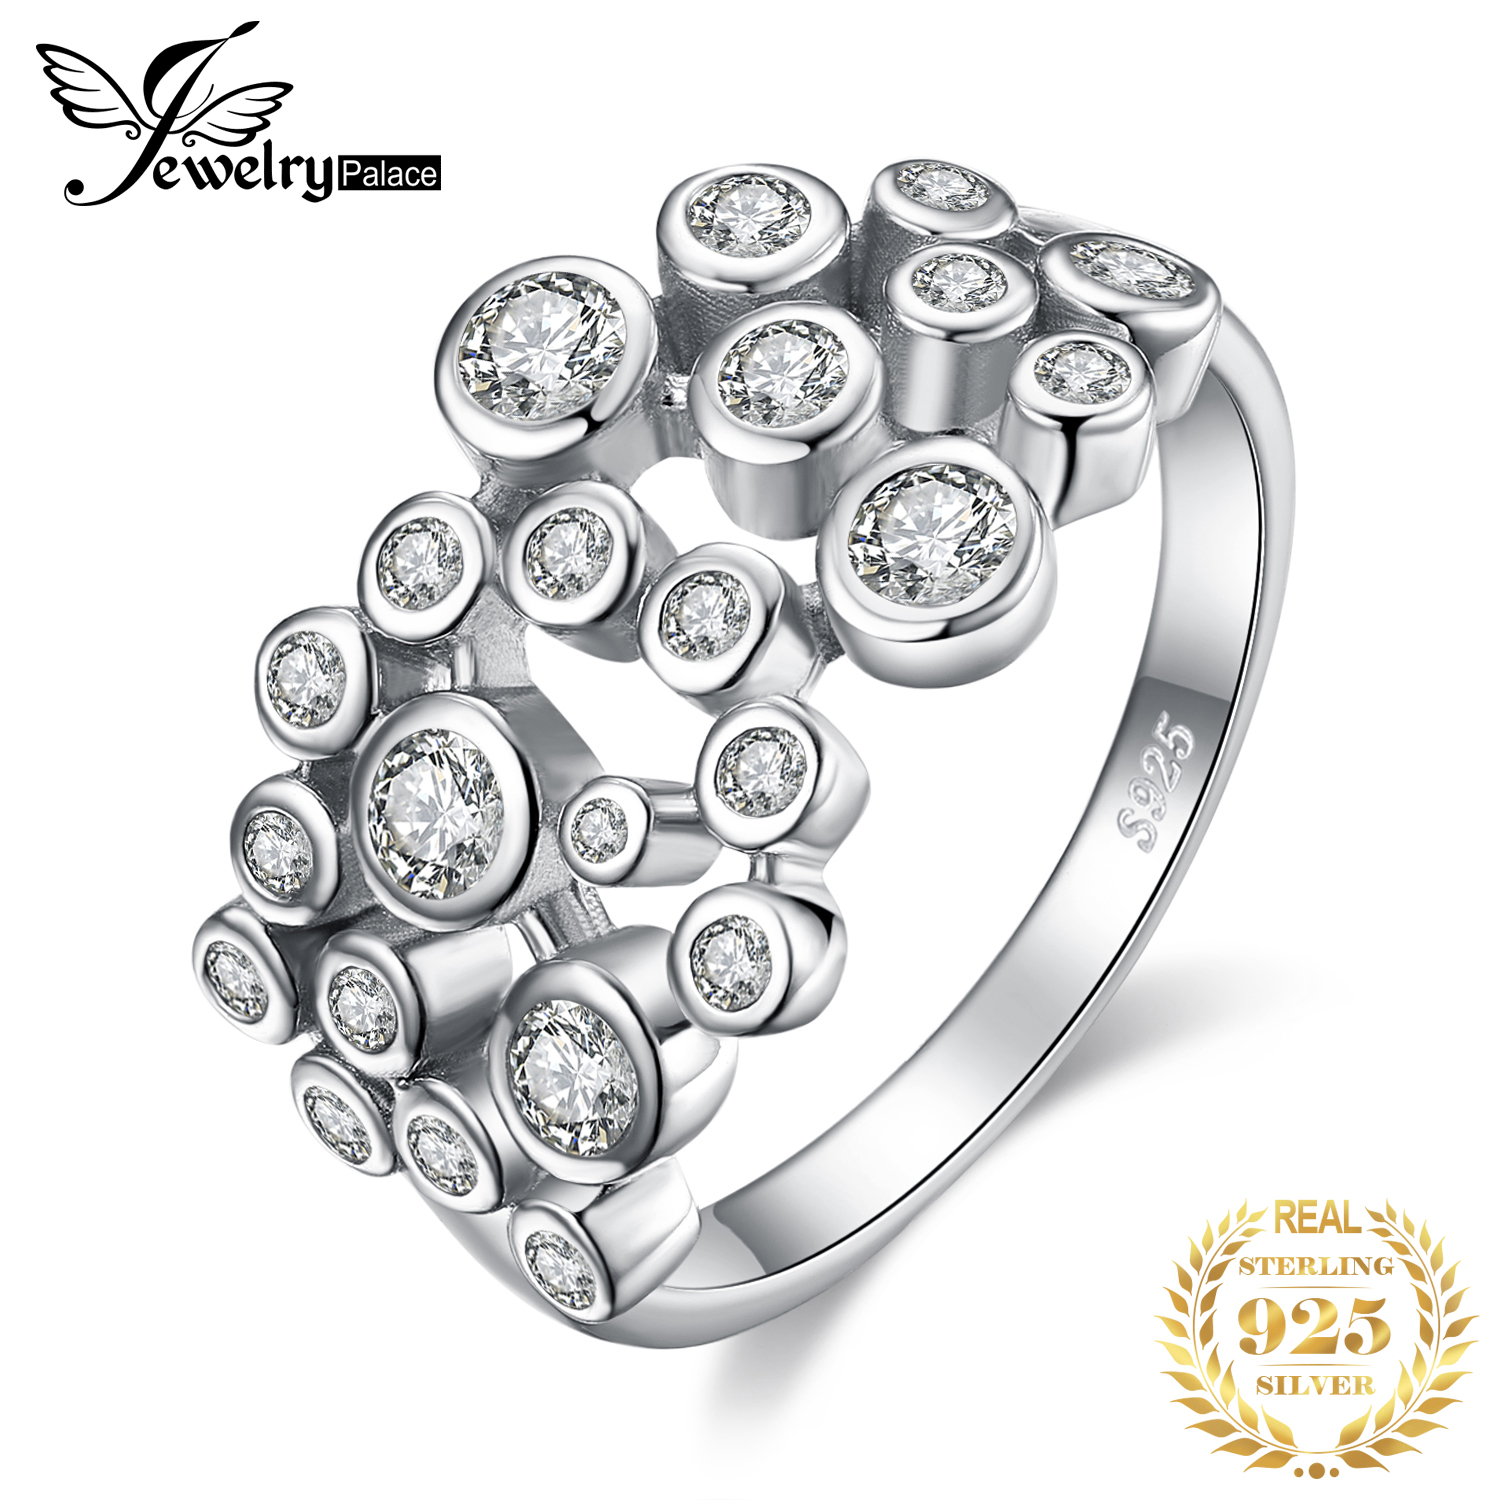 JewelryPalace Huge Cubic Zirconia Rings 925 Sterling Silver Rings For Women Stackable Ring Silver 925 Jewelry Fine Jewelry